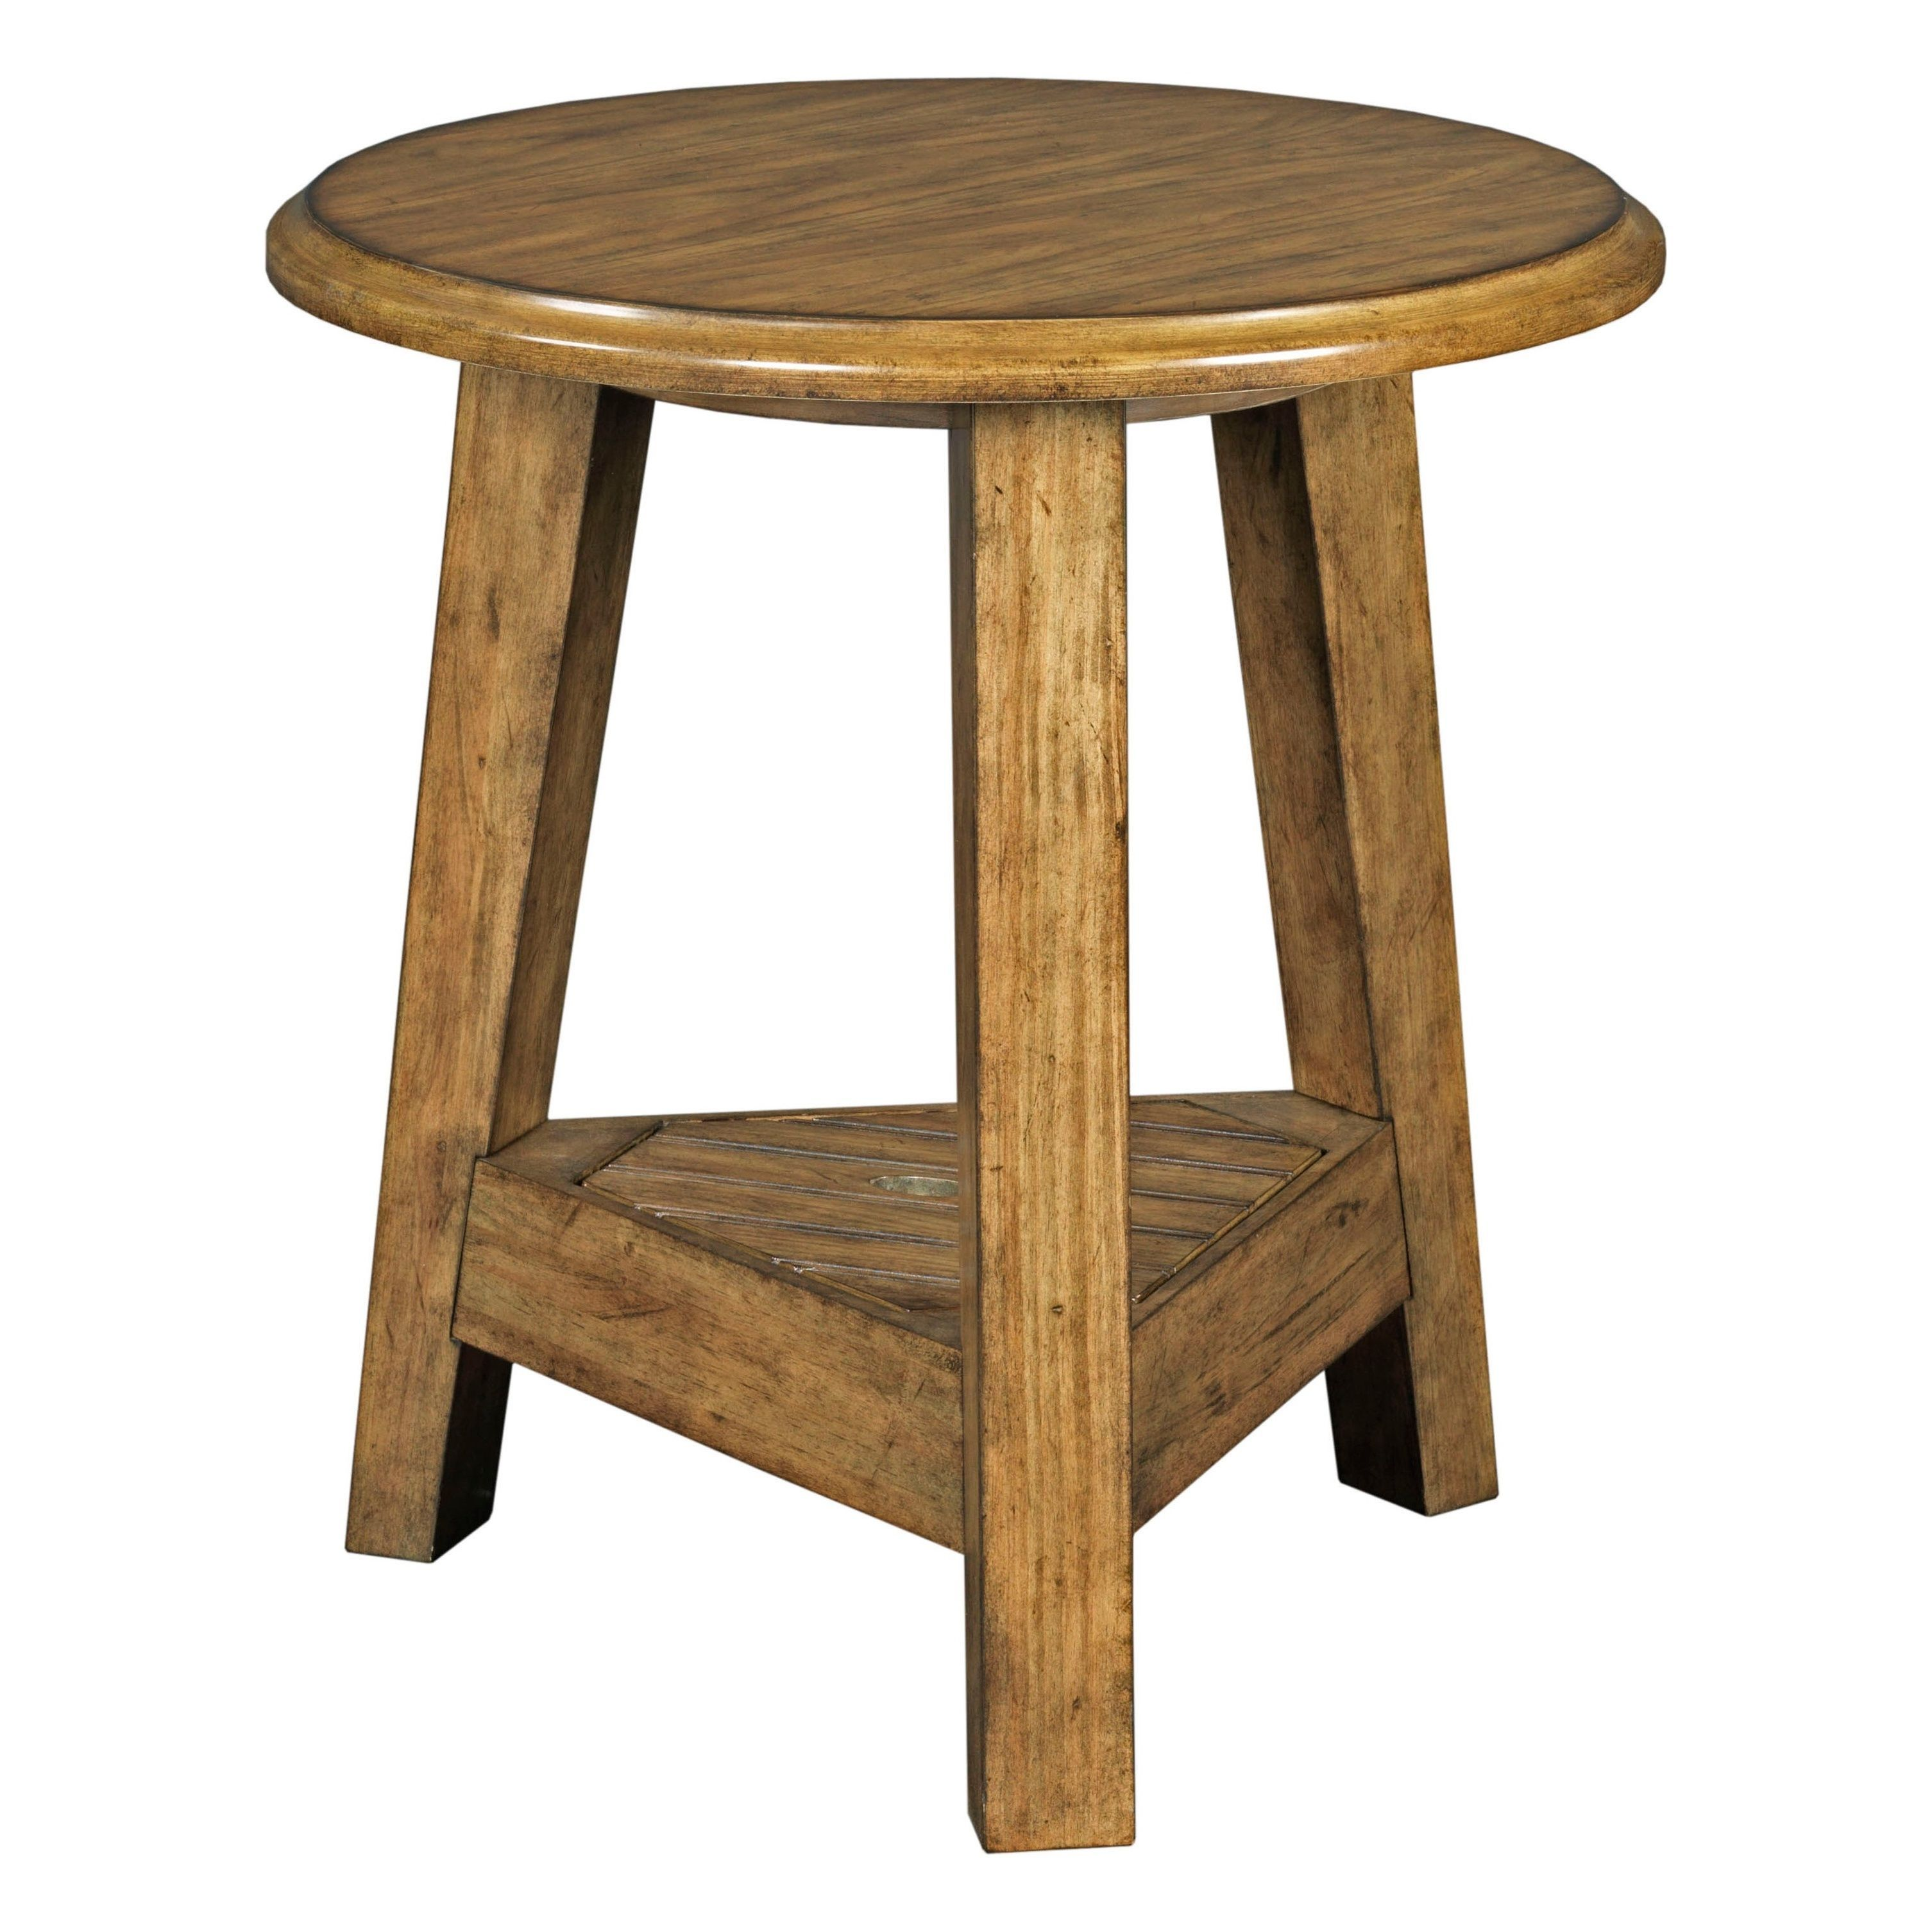 Broyhill New Vintage Round Lamp Table Broyhill Furniture End Tables Furniture [ 3012 x 3012 Pixel ]